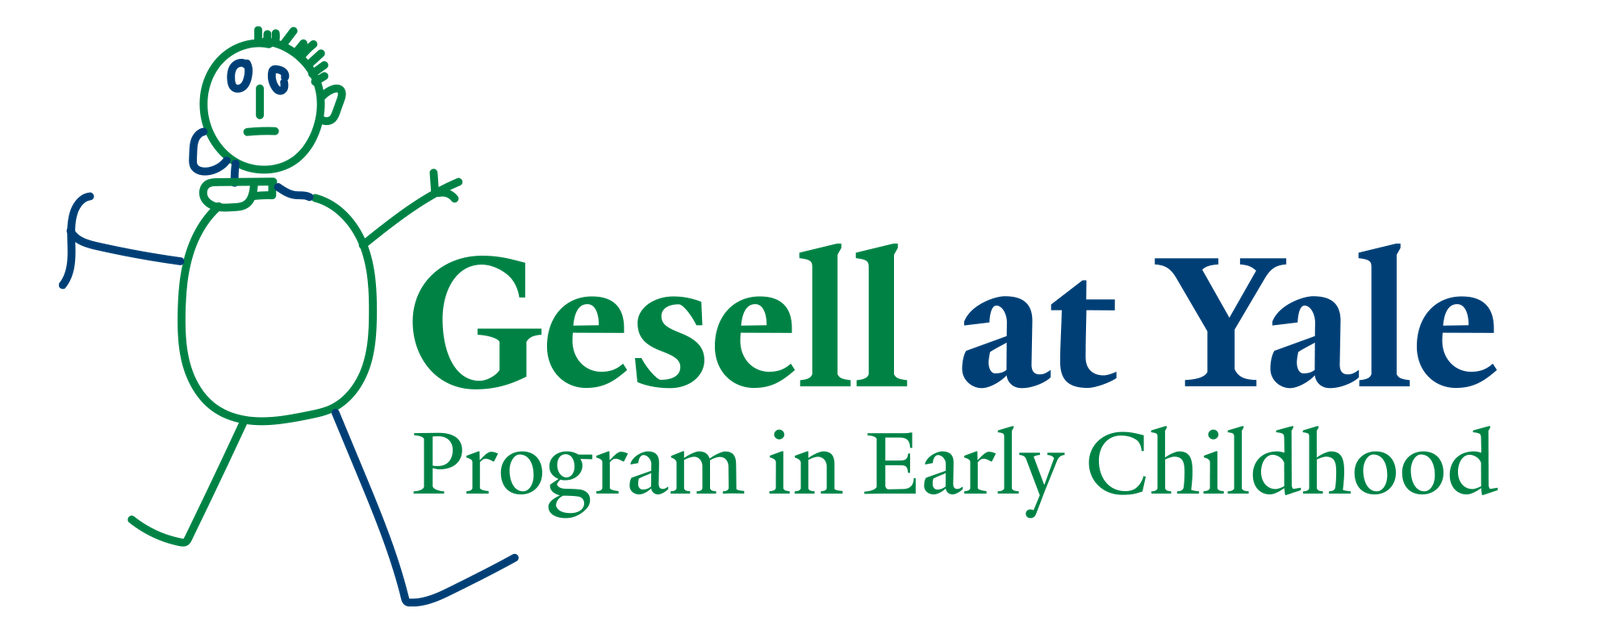 Gesell Program in Early Childhood